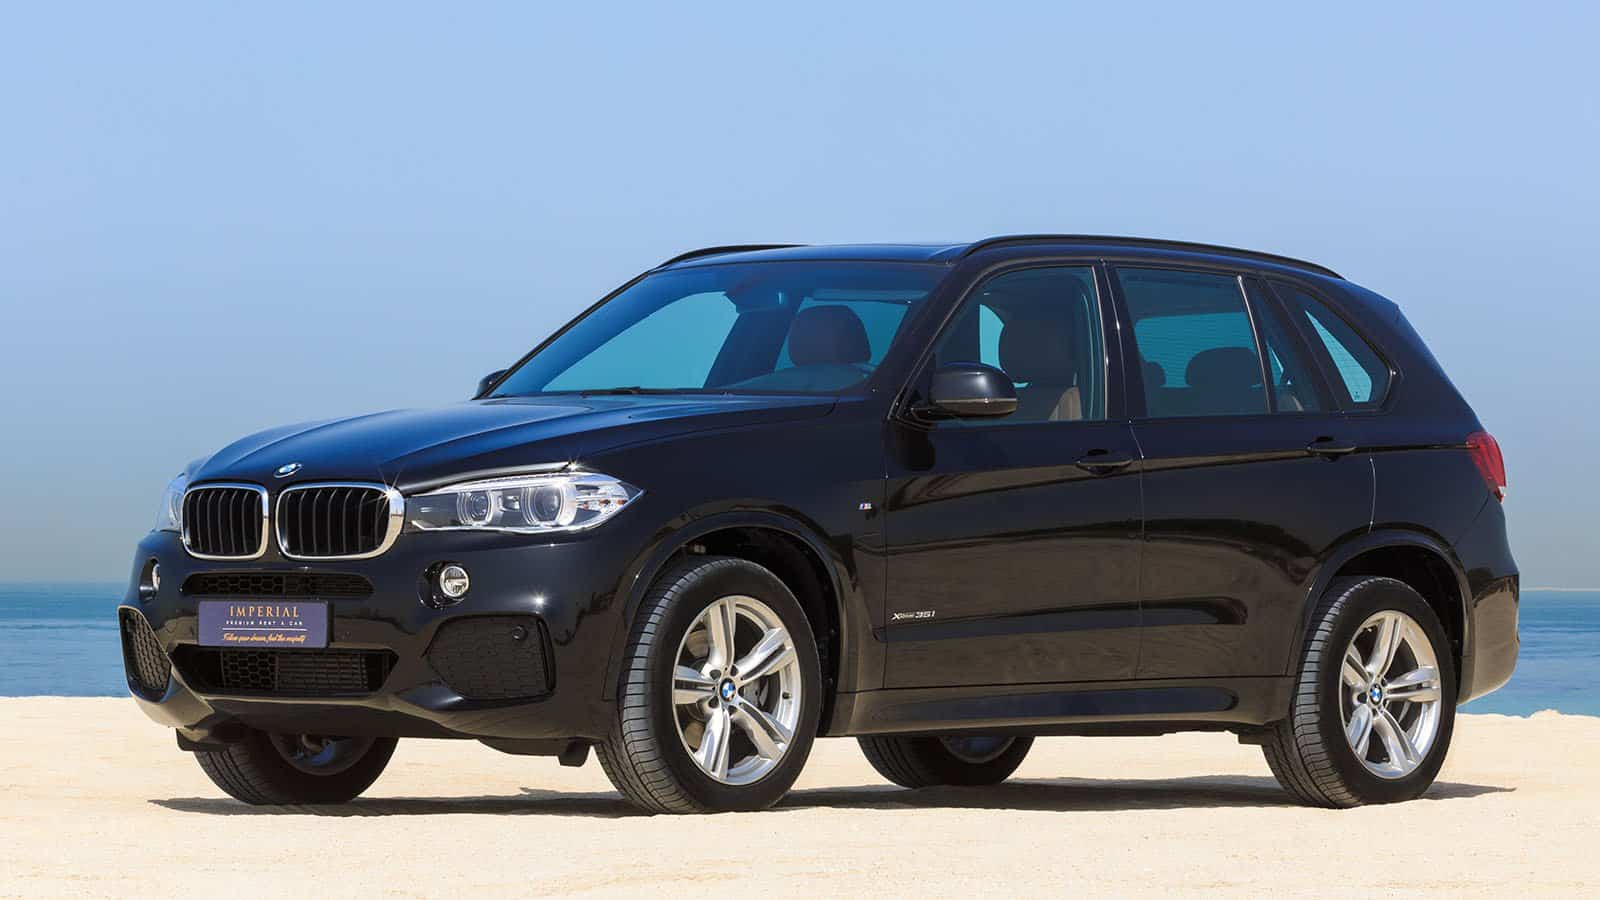 Bmw X5 For Rent Dubai Imperial Premium Rent A Car